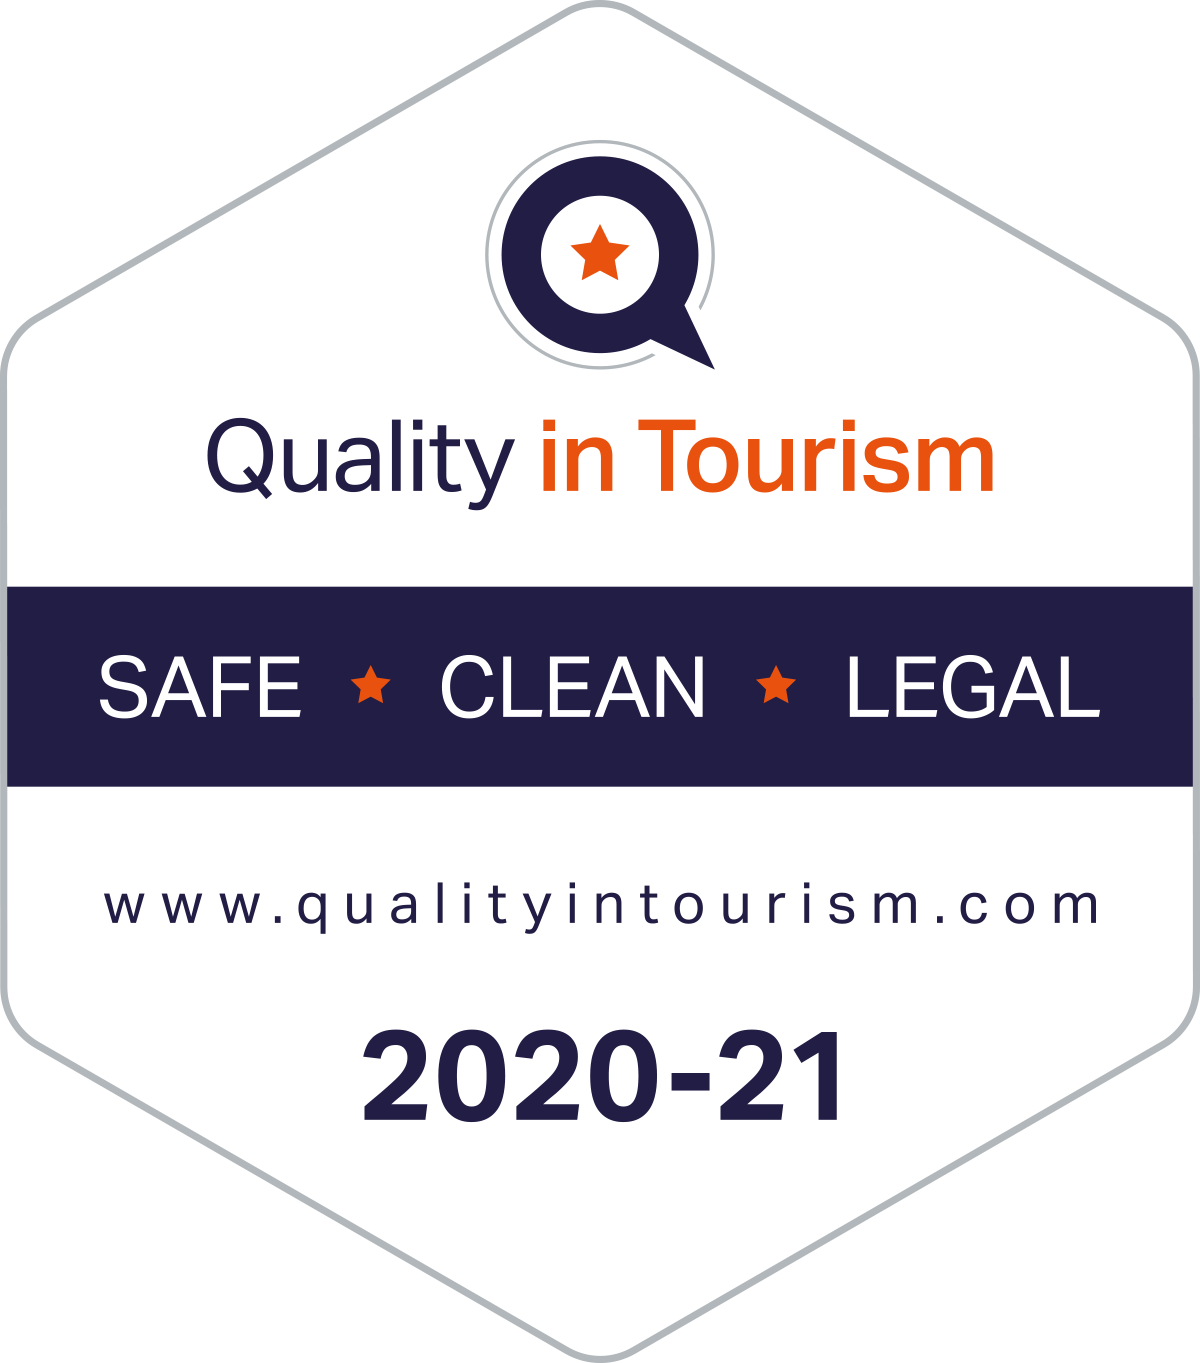 Gwelmor in north Cornwall achieves Quality in Tourism 'Safe, Clean and Legal' accreditation